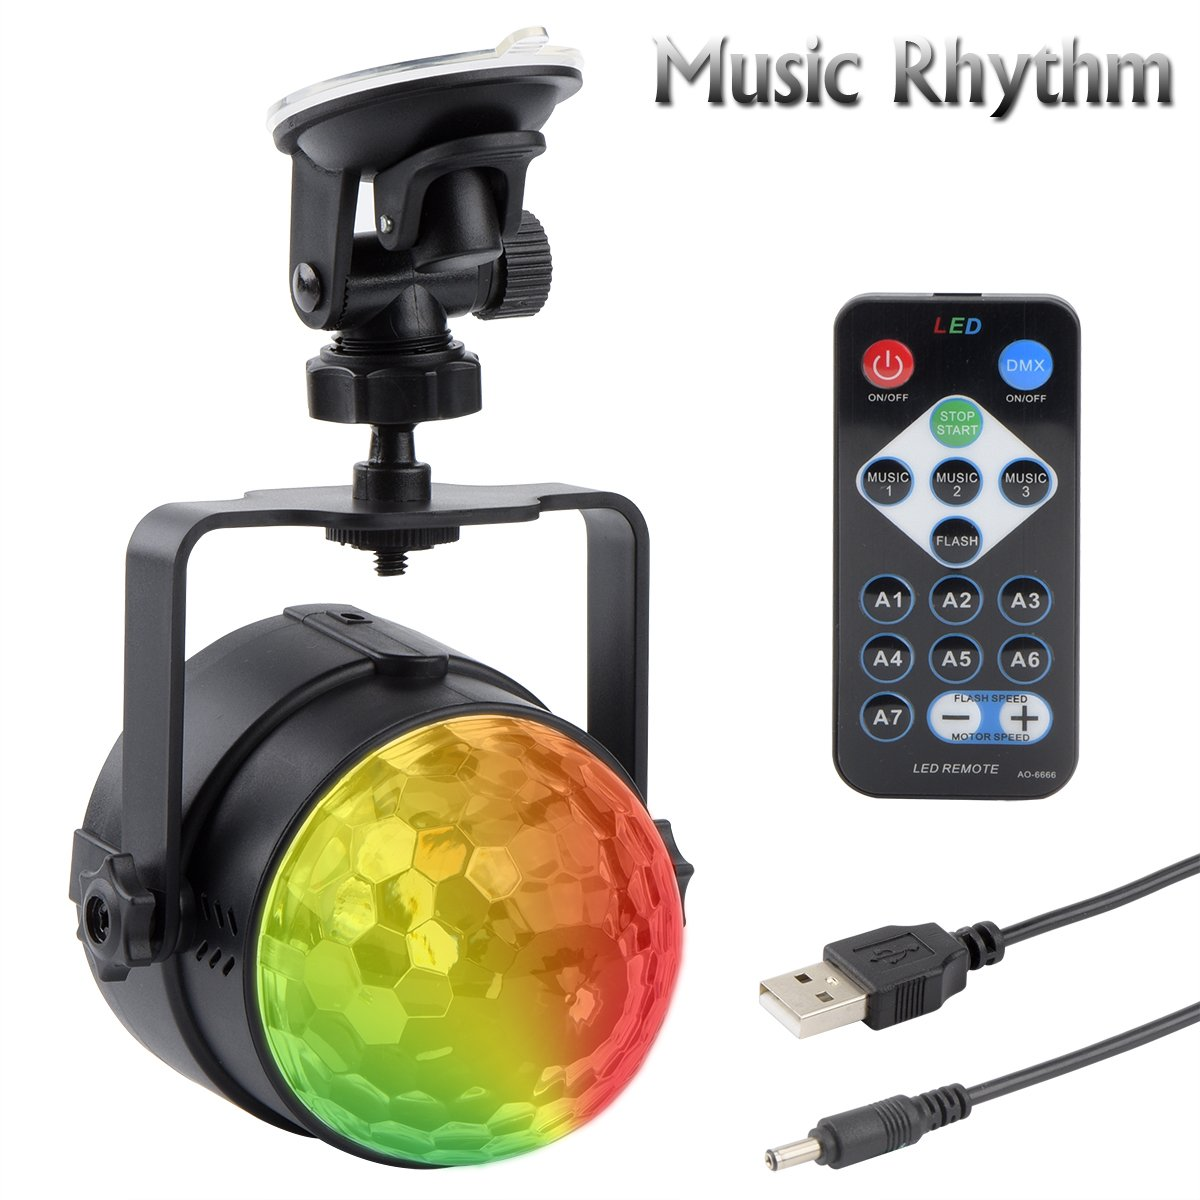 Autai USB Stage Light LED Disco Light Ball Music Rhythm RGB Multi Color Change Strobe DJ Light for Festival Birthday Home Party Bar Club Xmas with Remote Controller